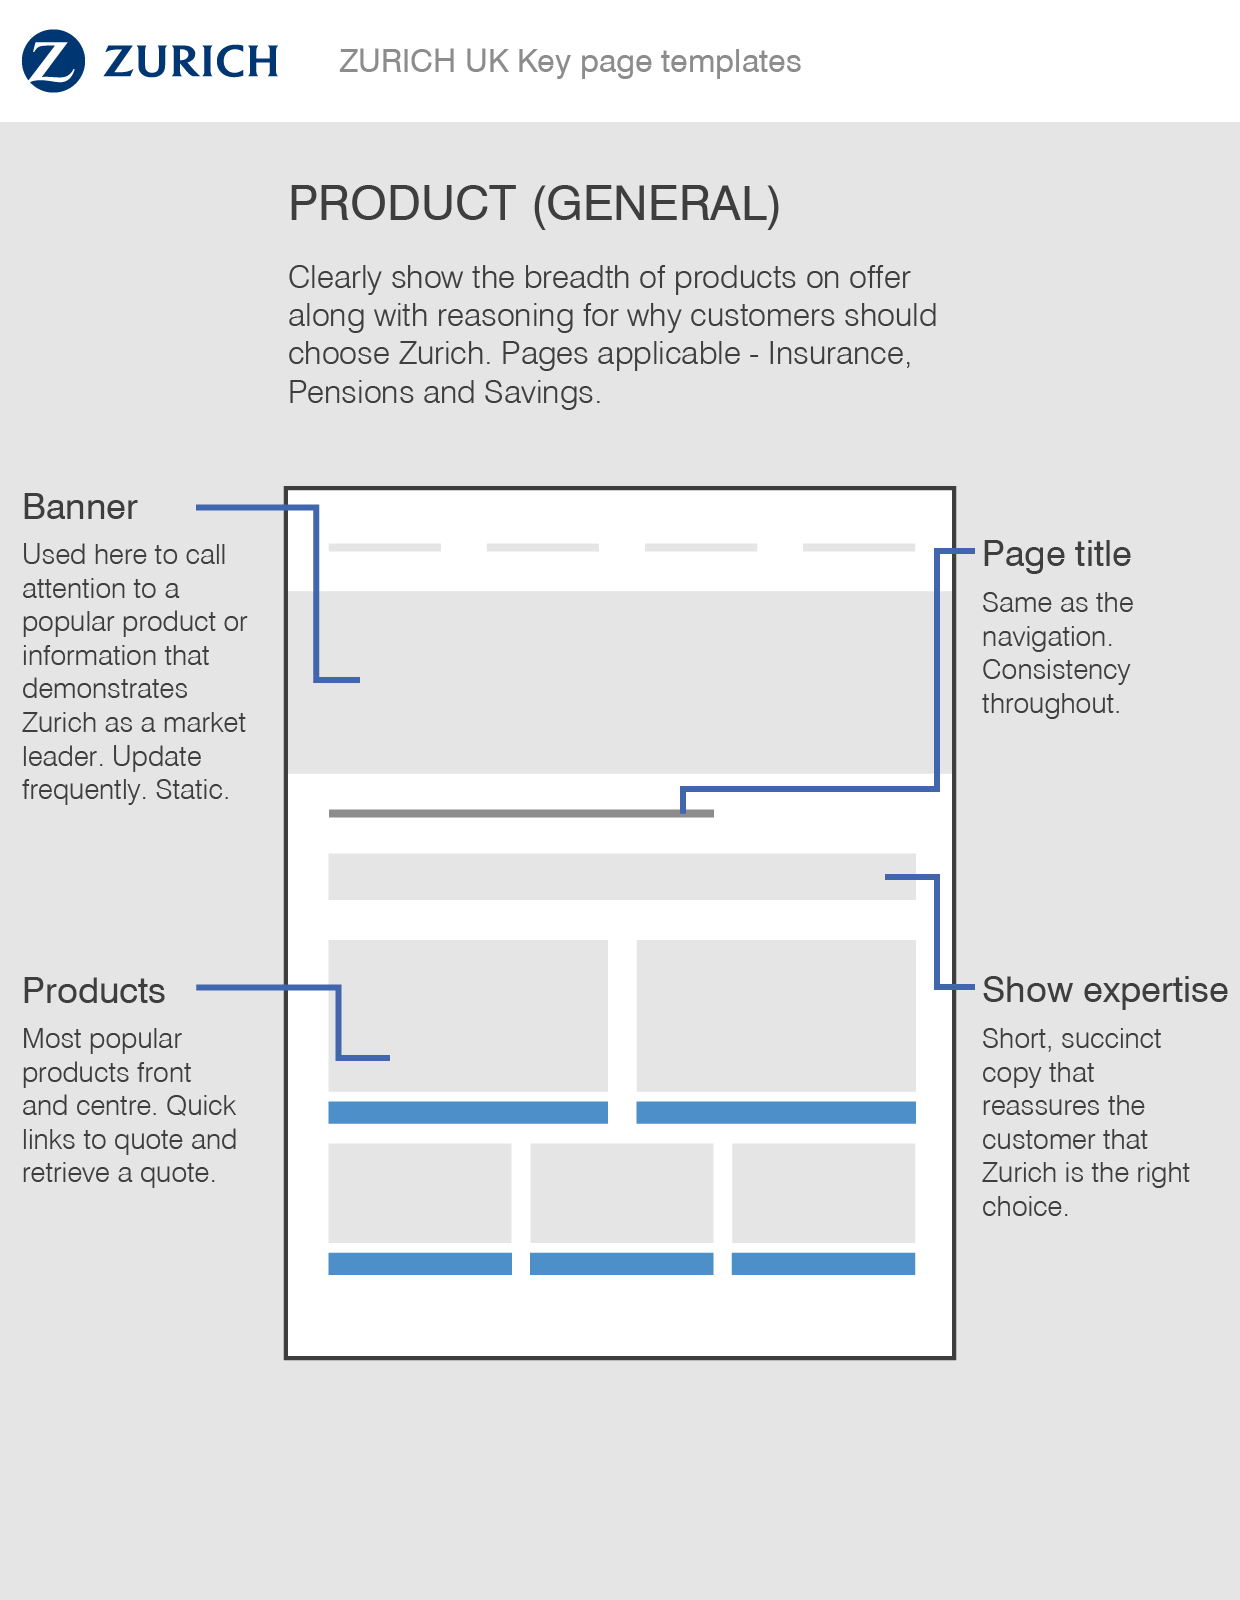 Product - general1x.png